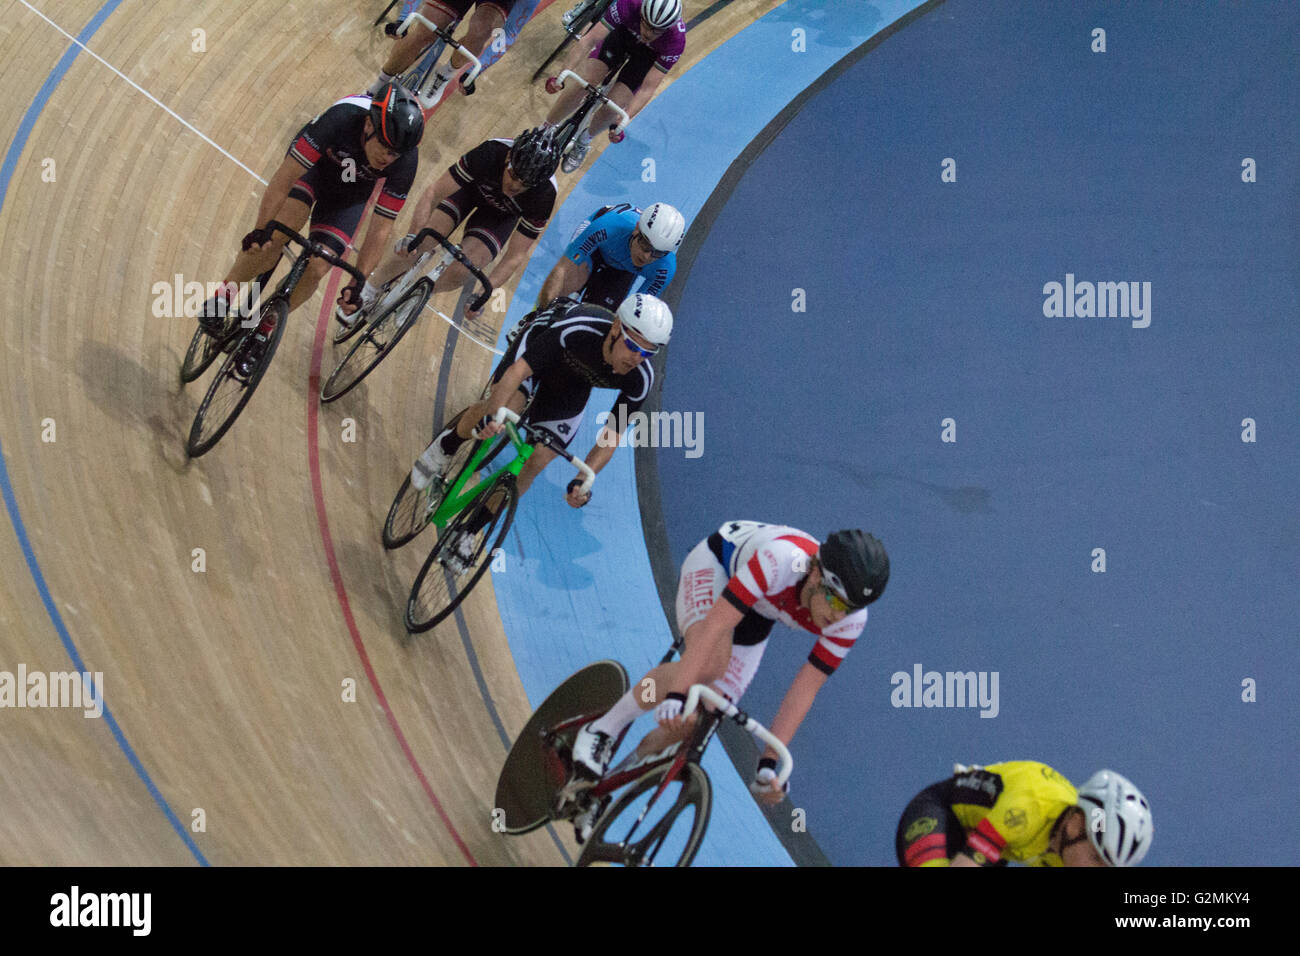 Interior of Lea Valley Lee Valley Olympic Velodrome, Stratford, London, with cycle race on wooden track - Stock Image